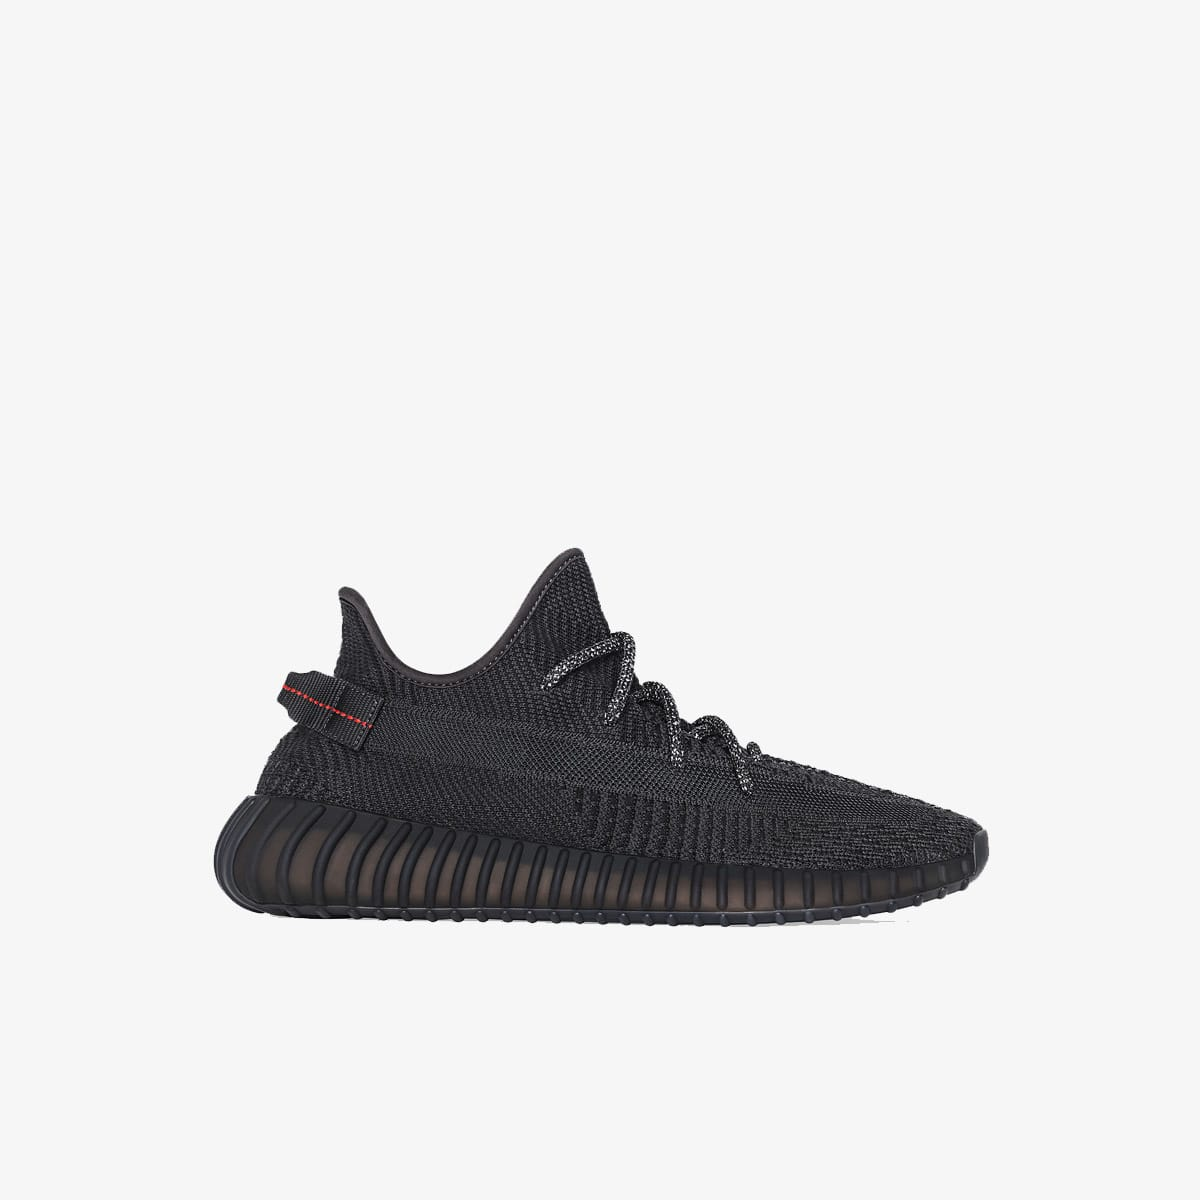 yeezy boost 350 end